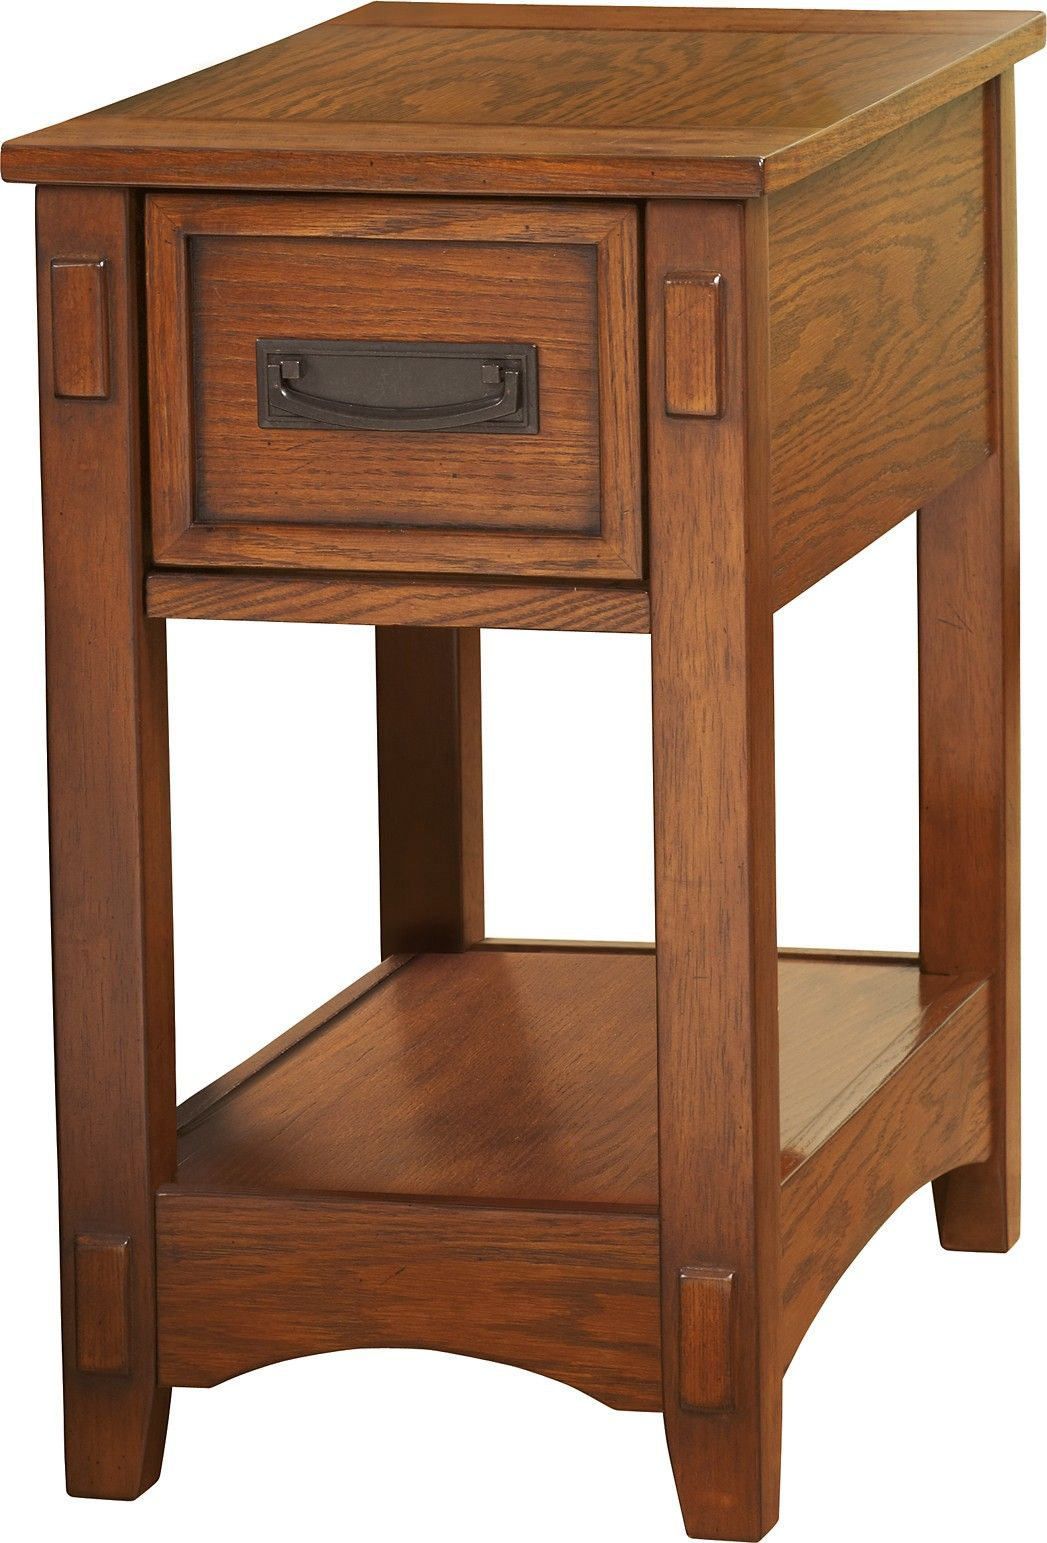 Ashley Breegin T007 319 Signature Design Chair Side End Table This Chairside End Table Made Of Engineered Wood V Ashley Furniture End Tables Brown Wood Chair